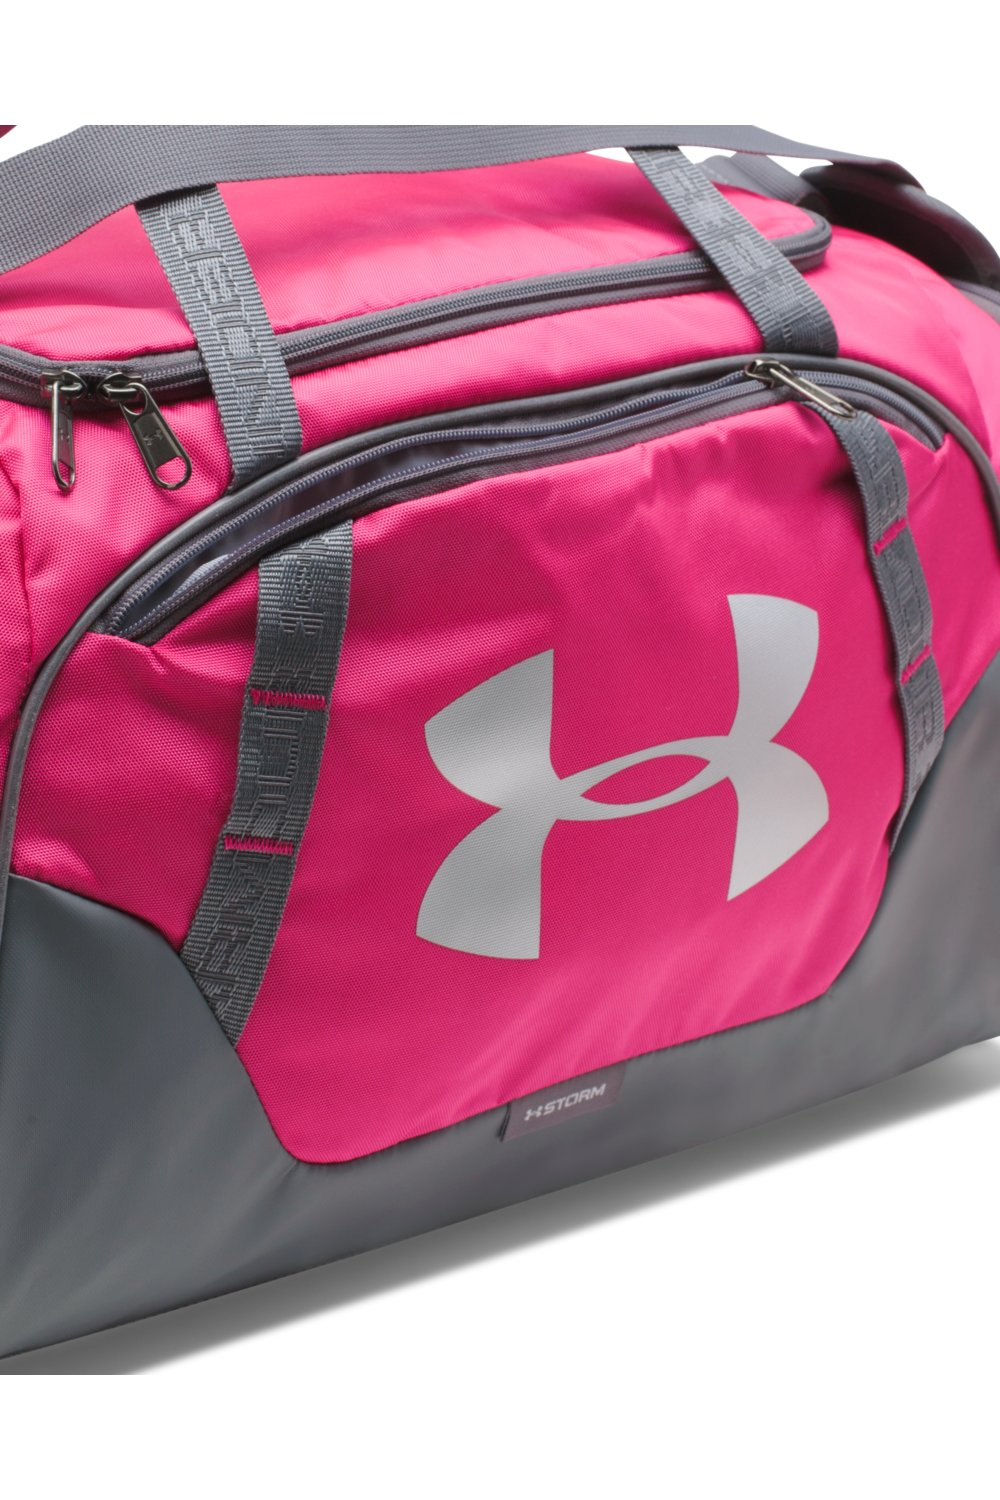 Under Armour geanta roz sport Undeniable Duffle